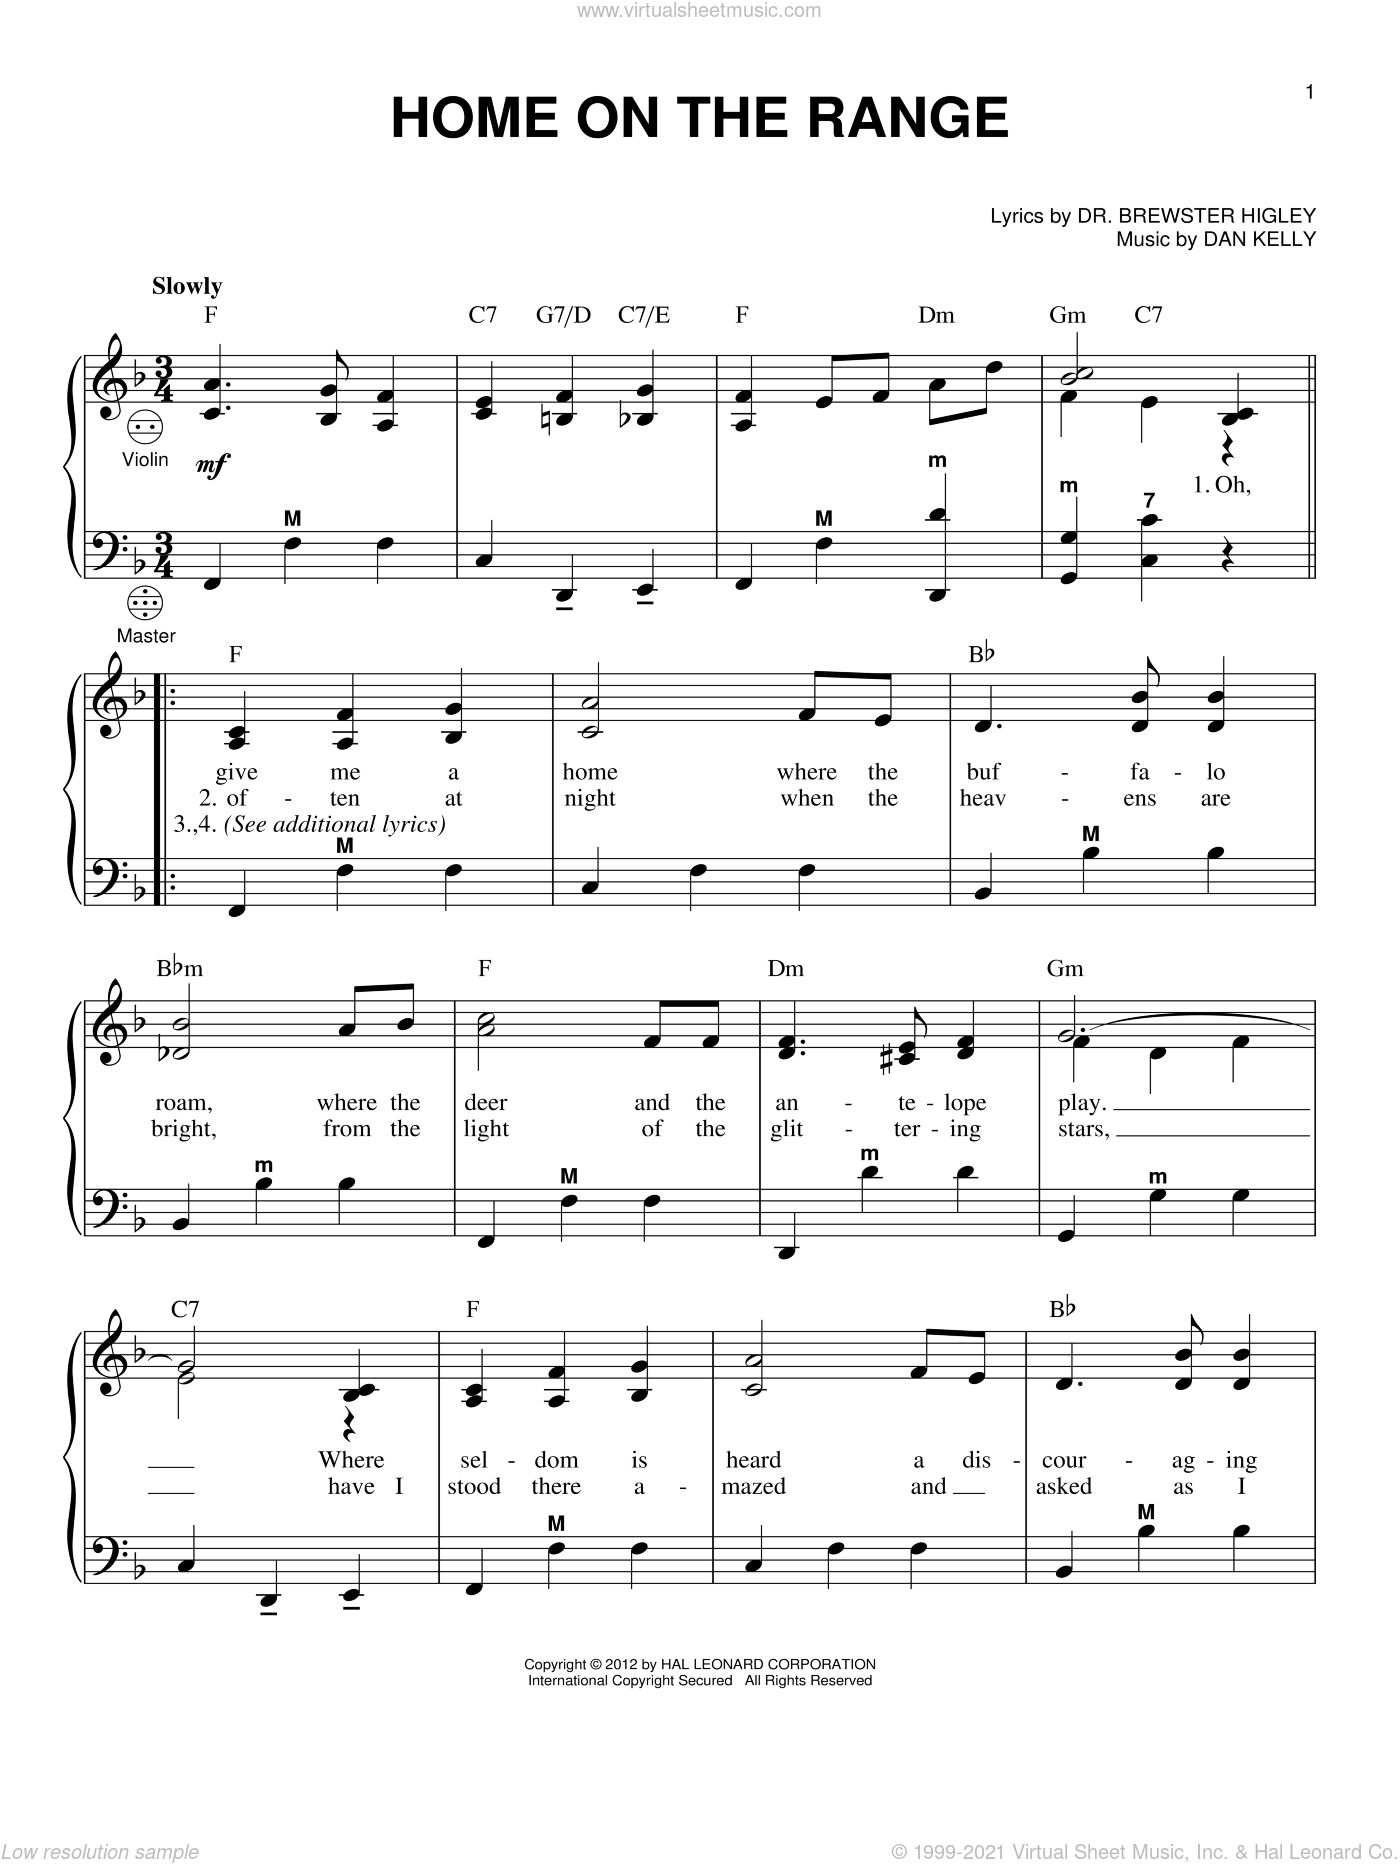 Home On The Range sheet music for accordion by Dan Kelly